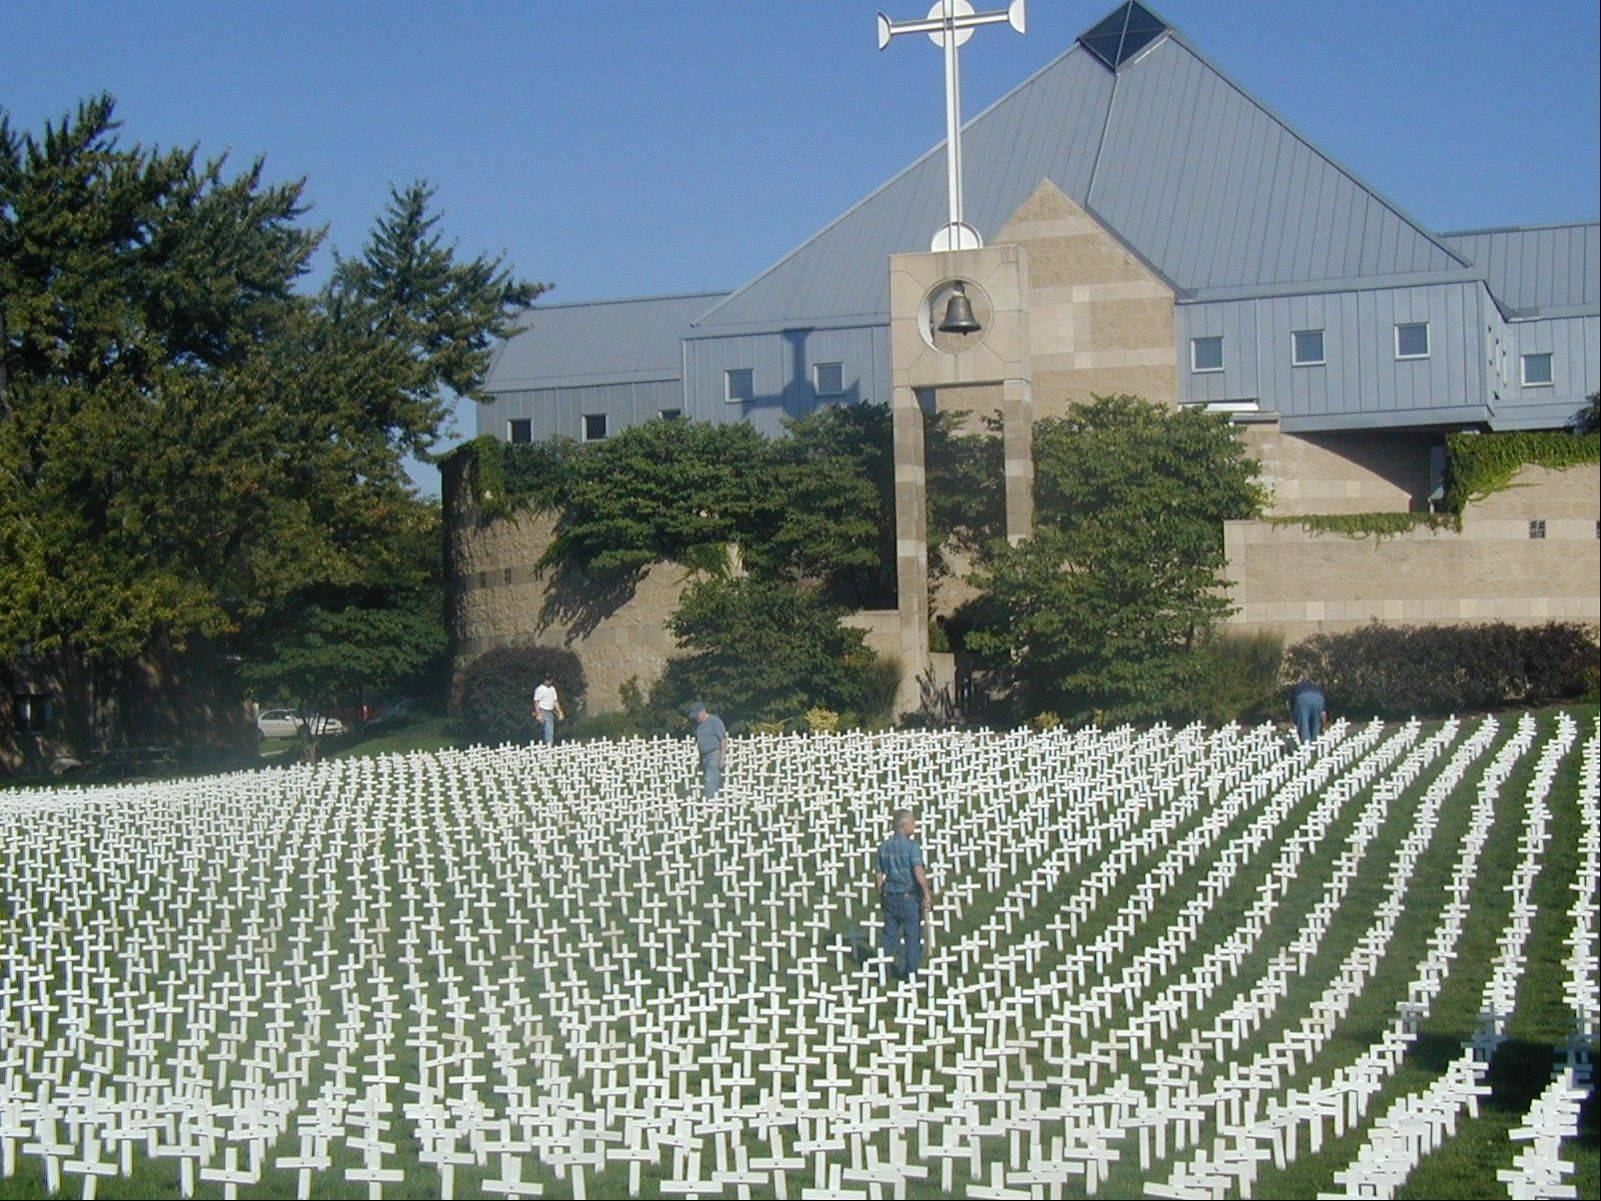 As part of the Respect Life Month, parishioners from St. Peter Church in Geneva put 3,500 crosses on the church lawn.